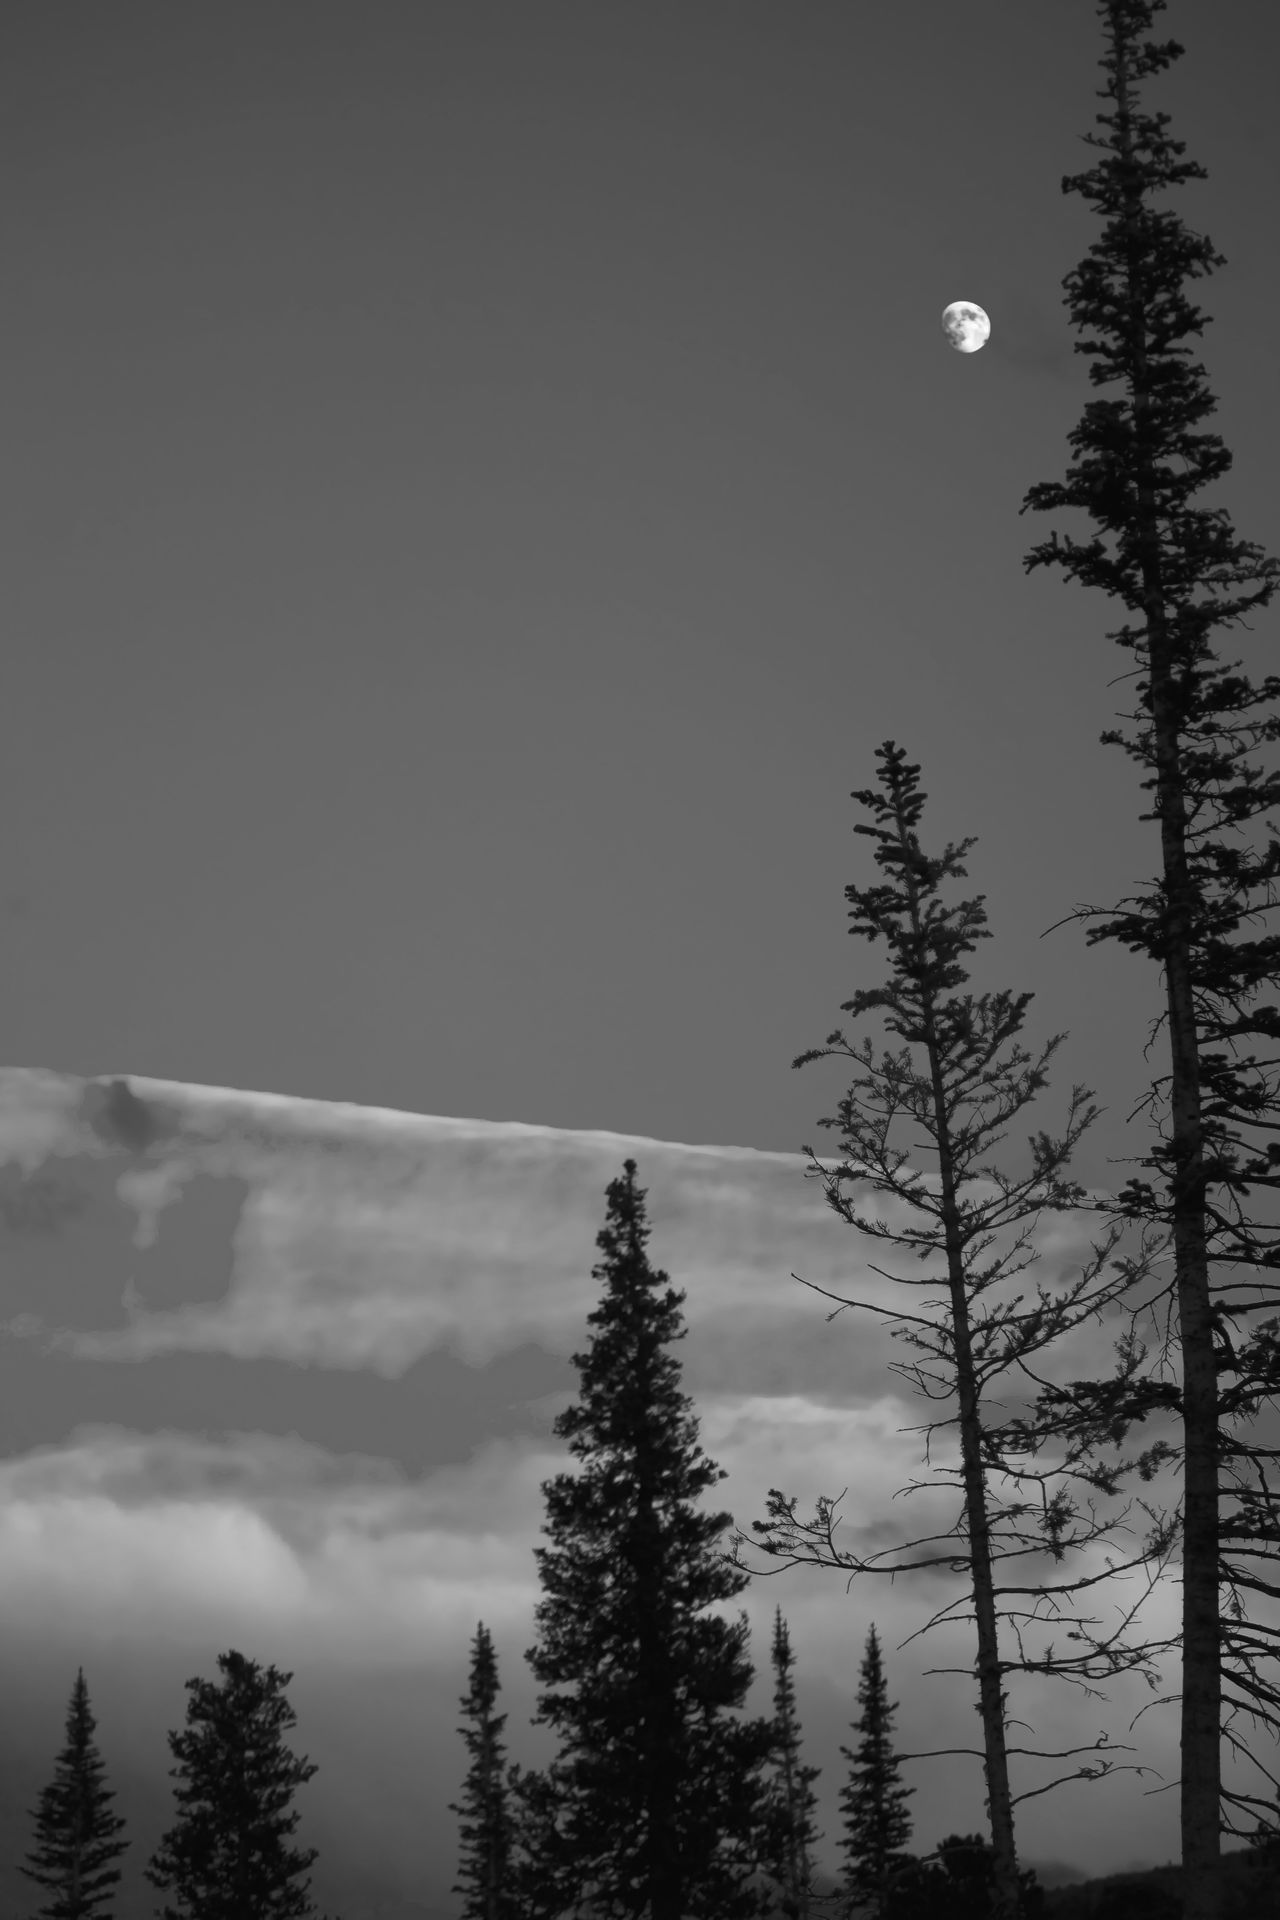 Moon sky and trees in black and white. Blackandwhite Lodge Pole Pine Moon Moonlight Rocky Mountains The Great Outdoors - 2016 EyeEm Awards The Great Outdoors With Adobe